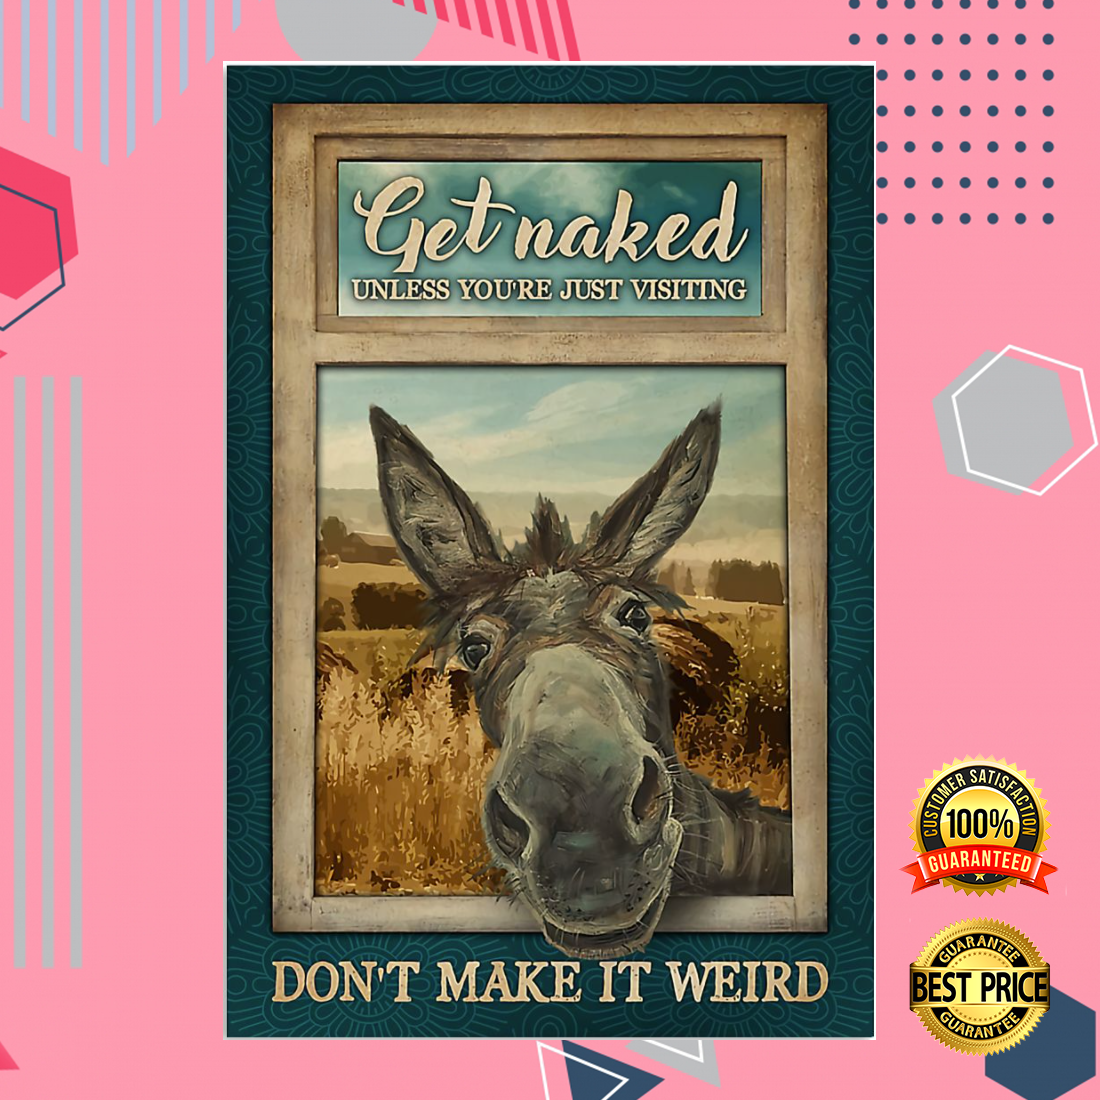 DONKEY GET NAKED UNLESS YOU ARE JUST VISITING DON'T MAKE IT WEIRD POSTER 5